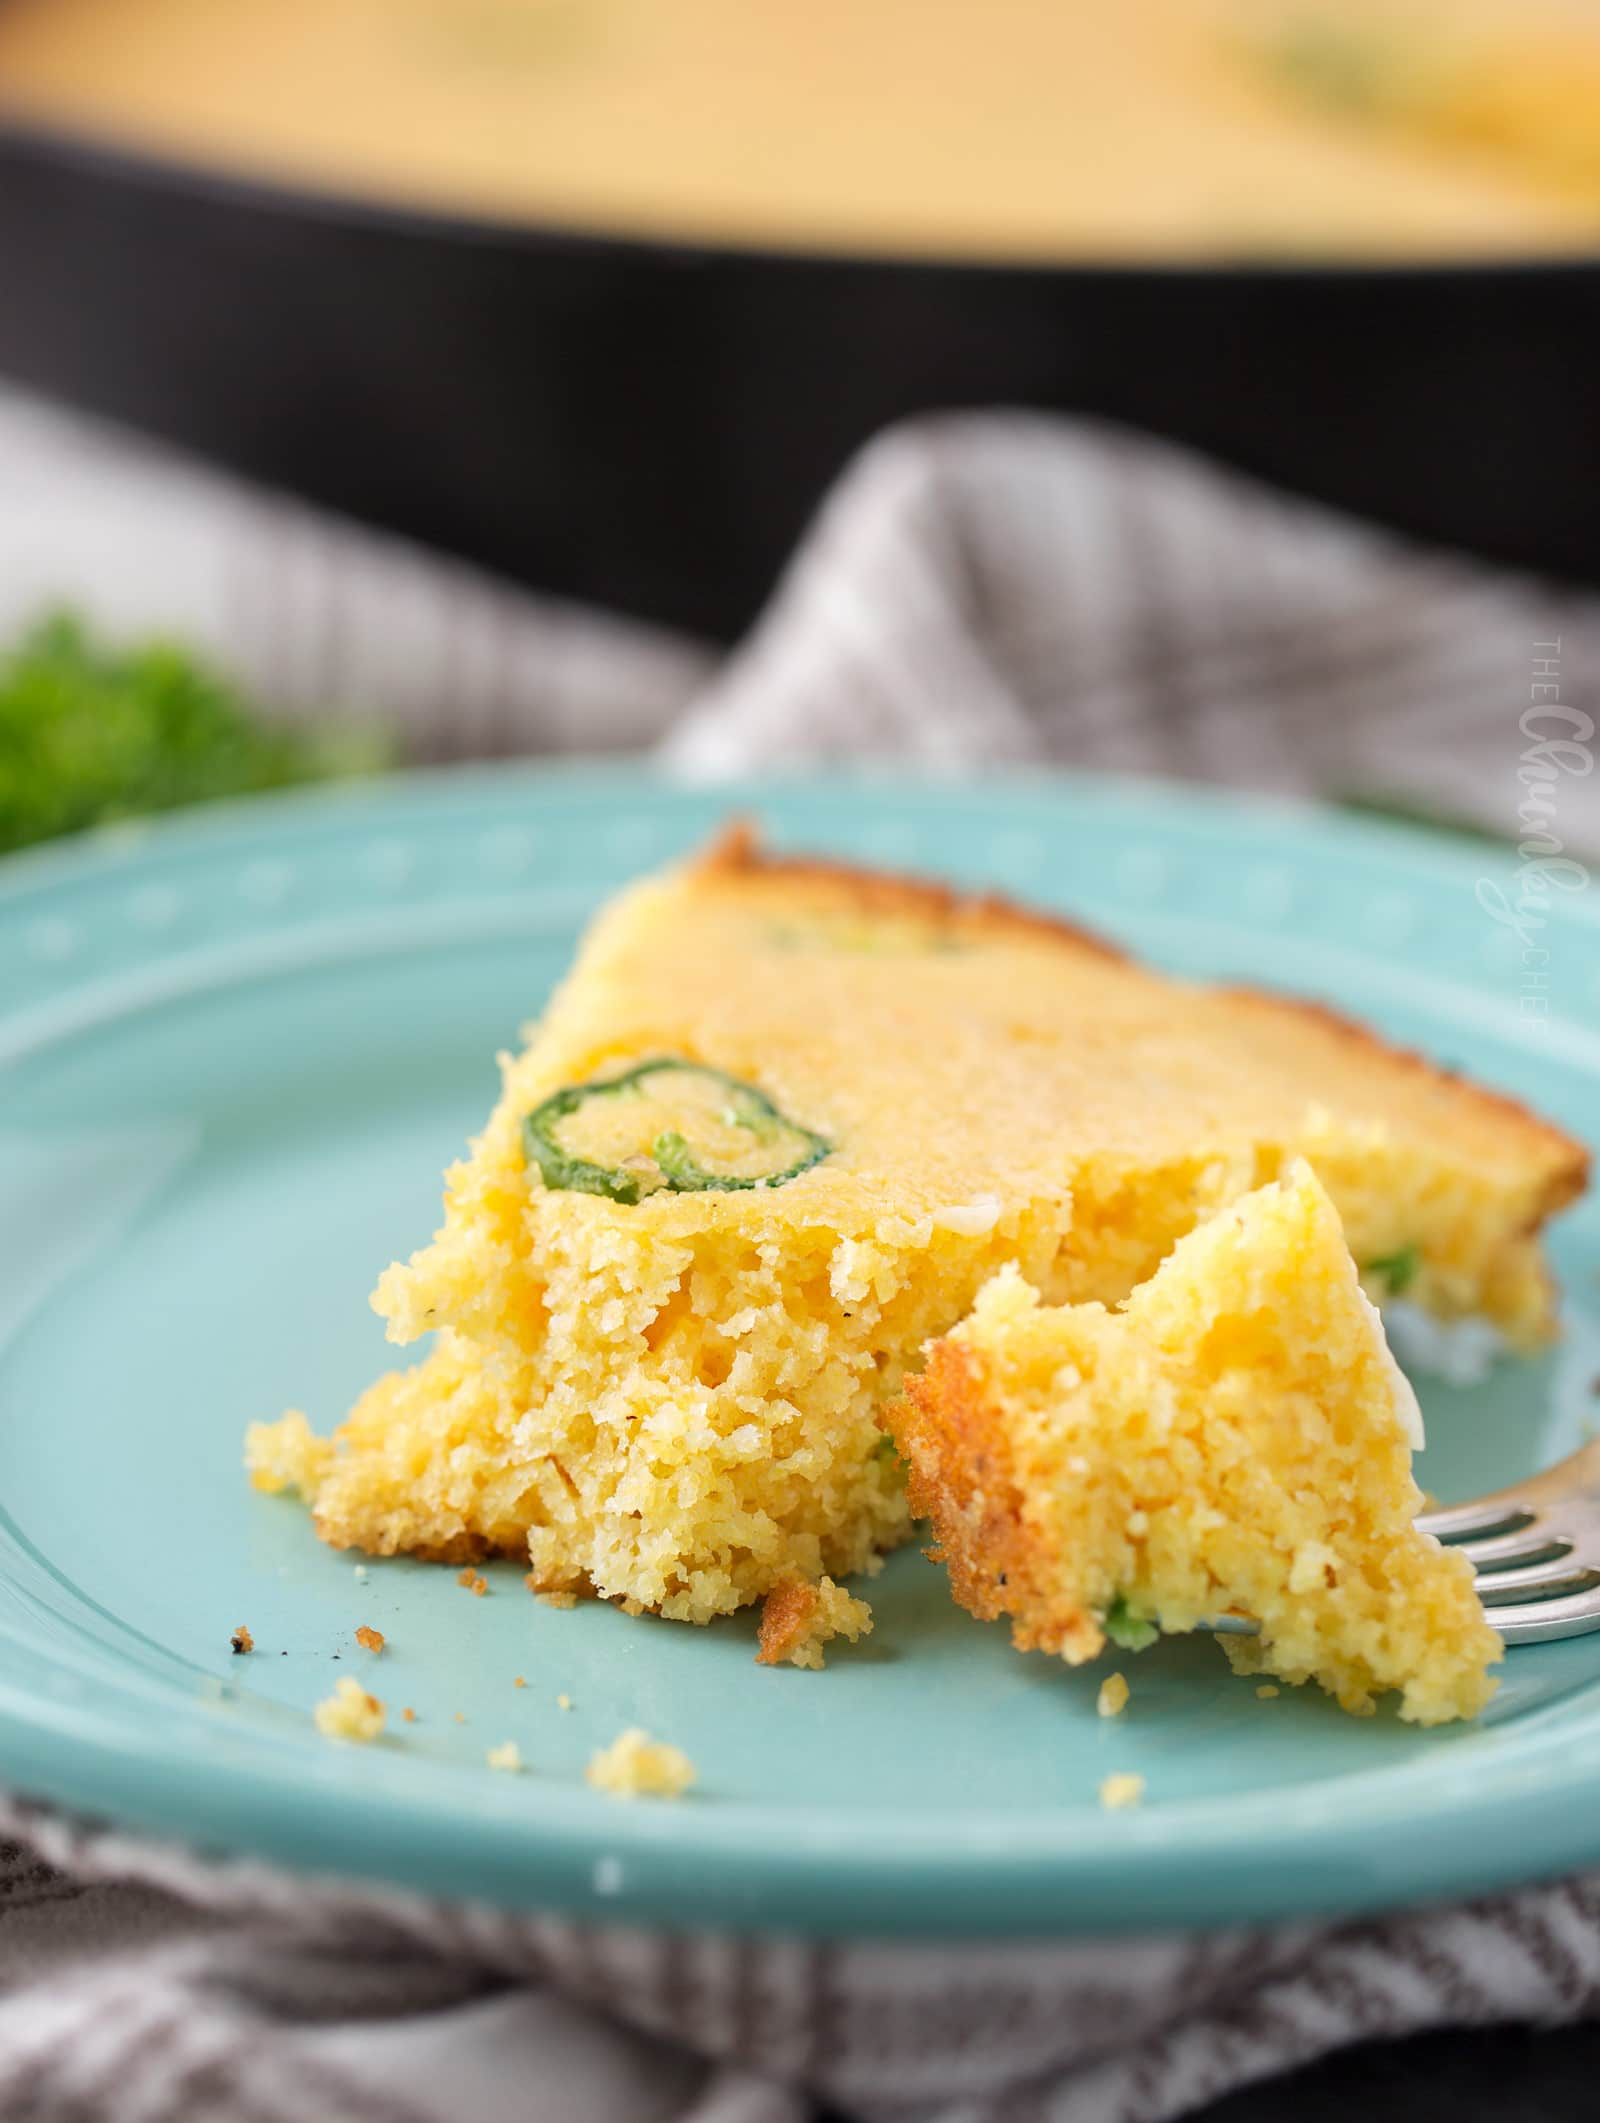 Homemade cornbread slice on blue plate with a forkful missing